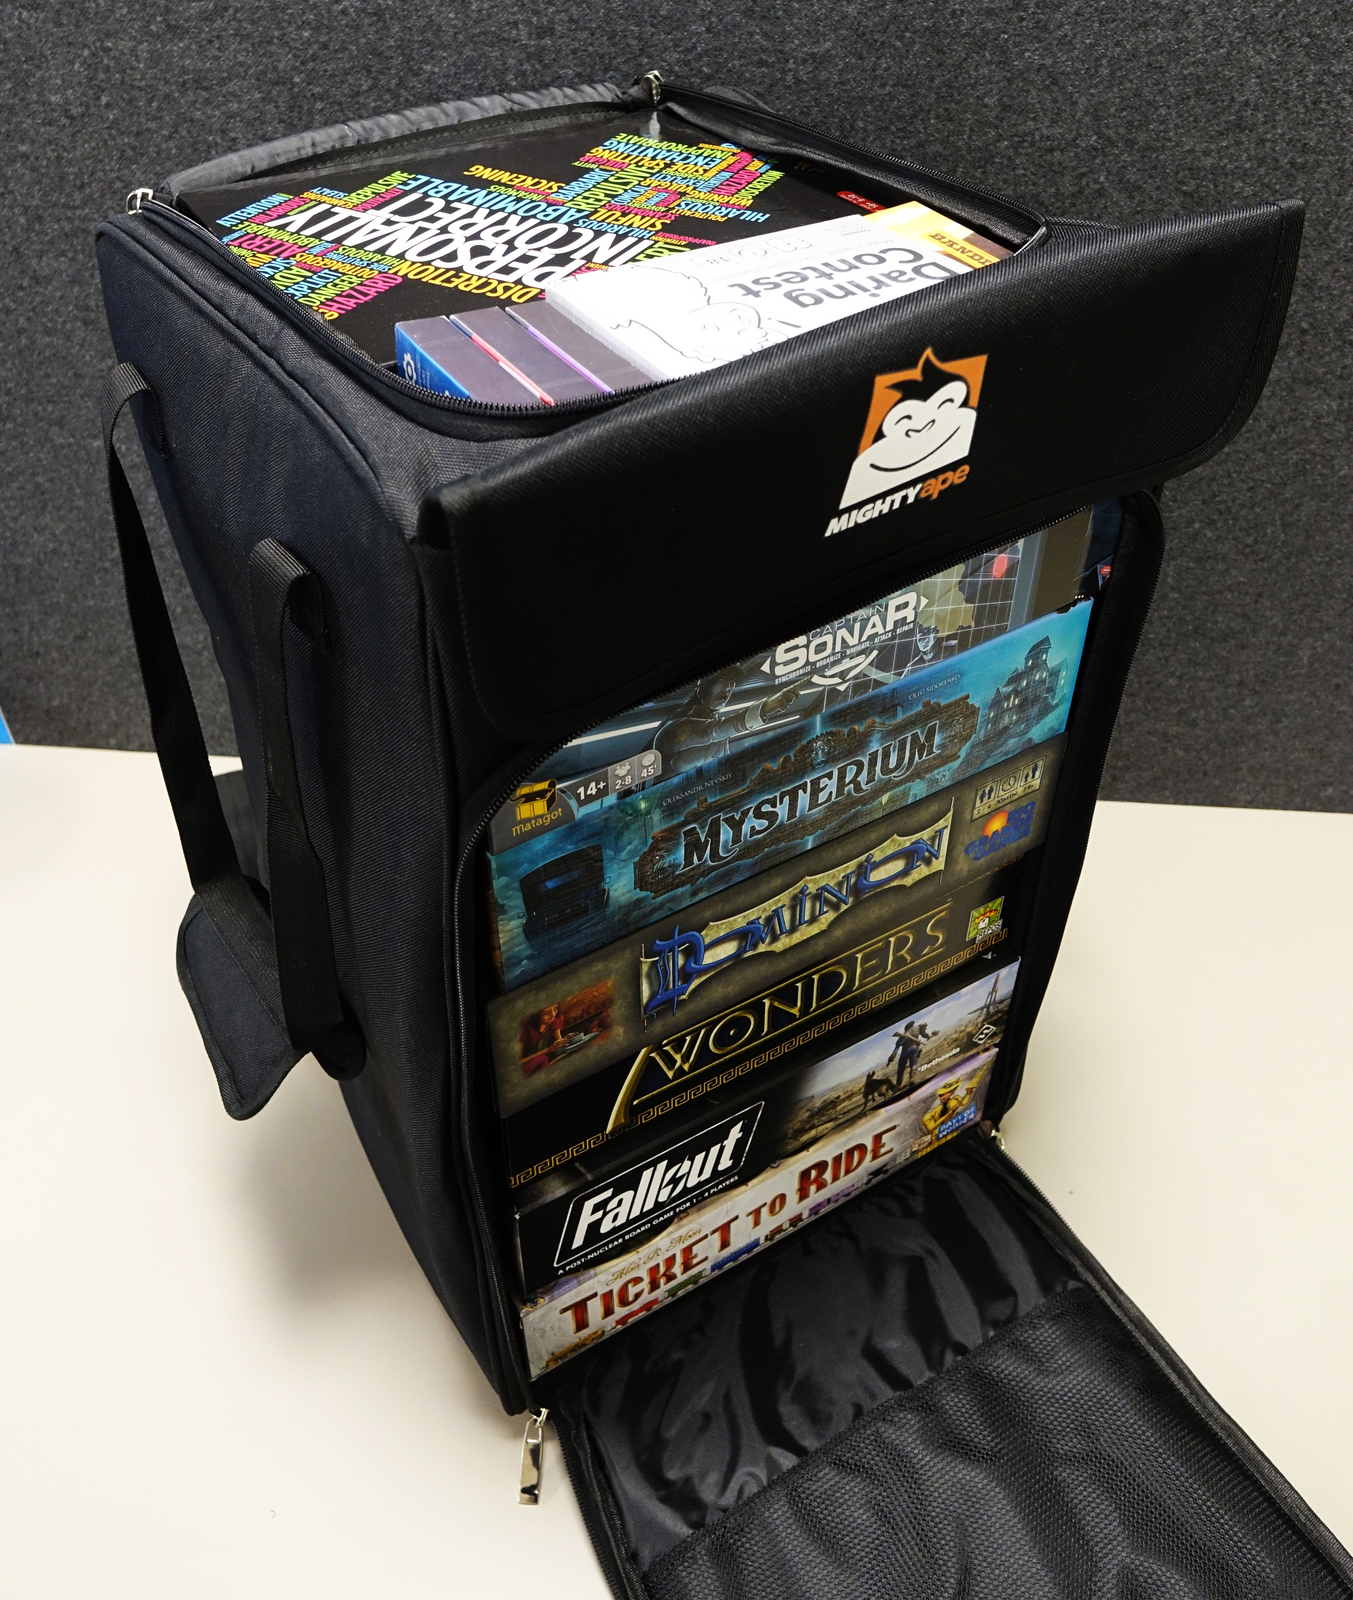 Mighty Ape Board Game Bag - Backpack image